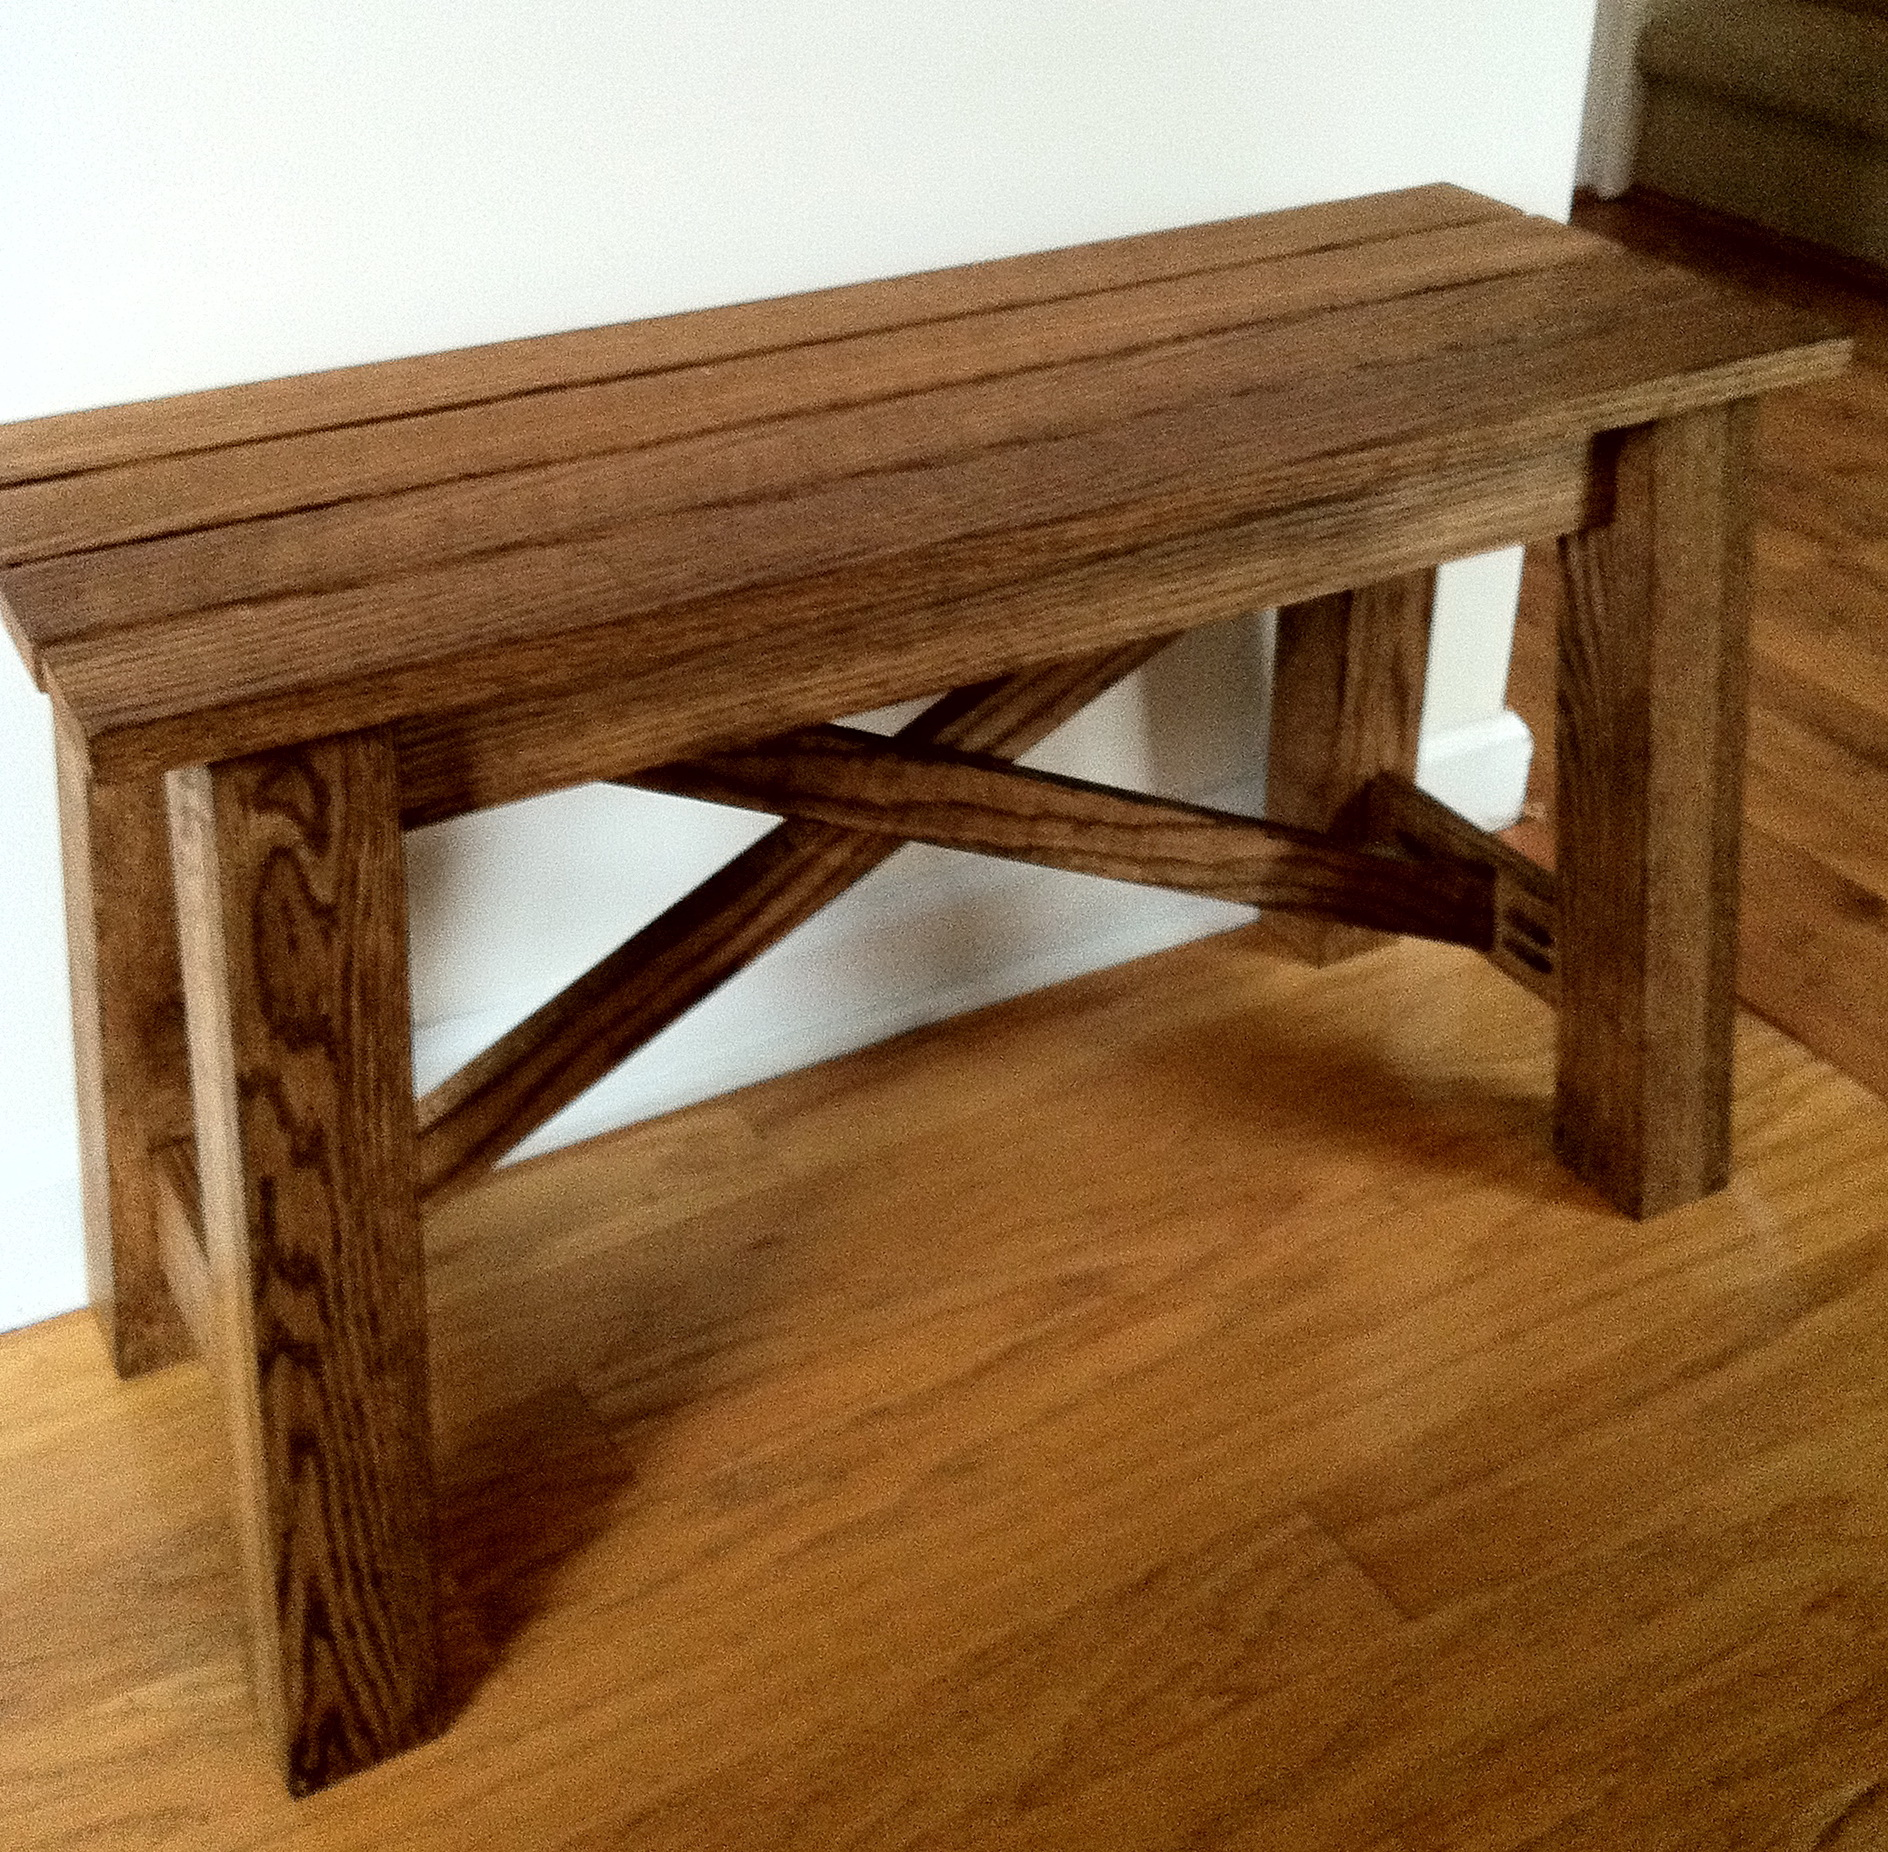 Rustic Wood Bench Plans